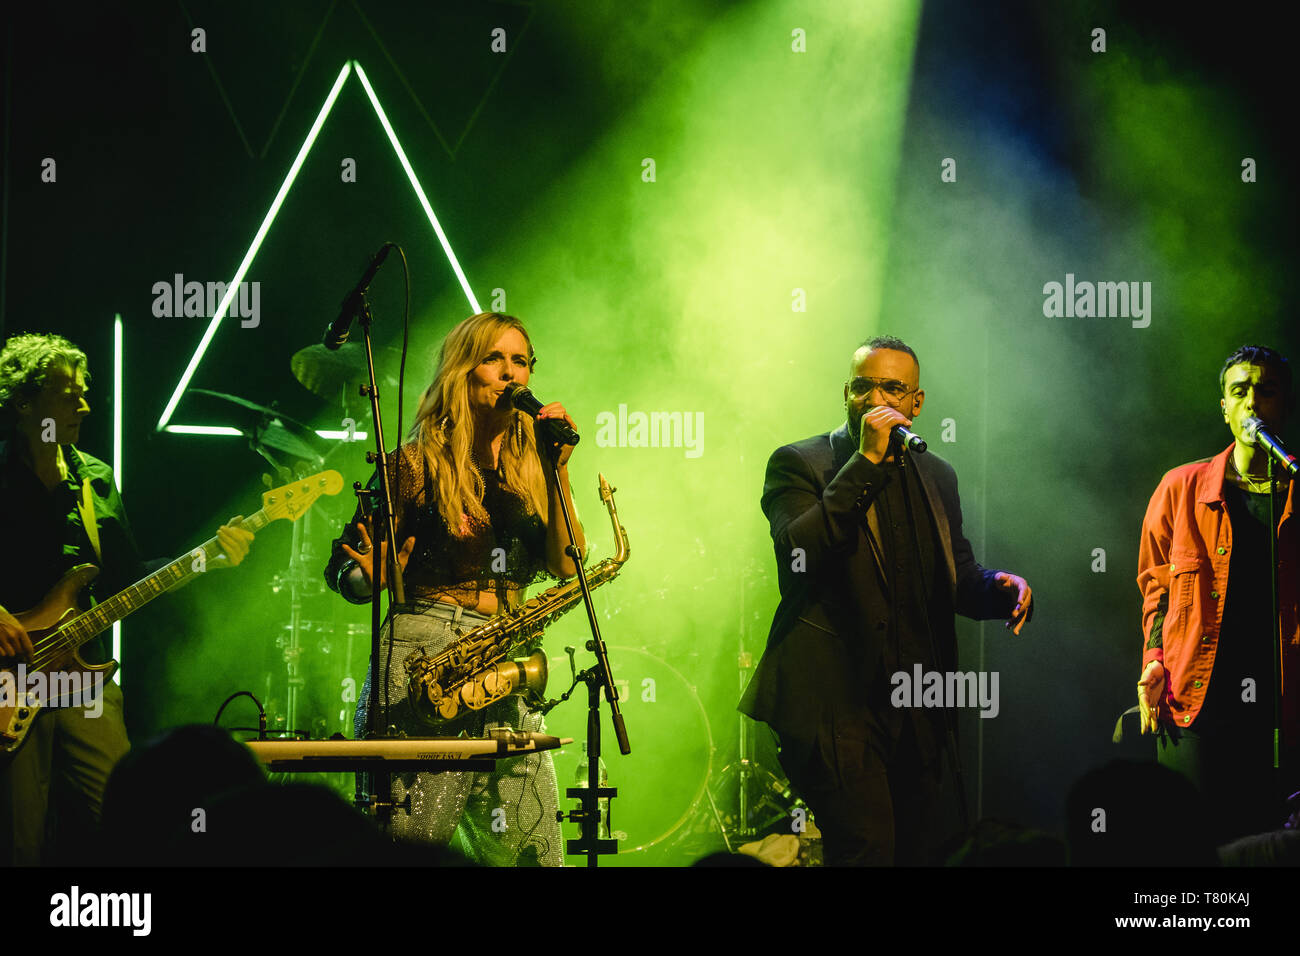 Candy Dulfer Stock Photos & Candy Dulfer Stock Images - Alamy